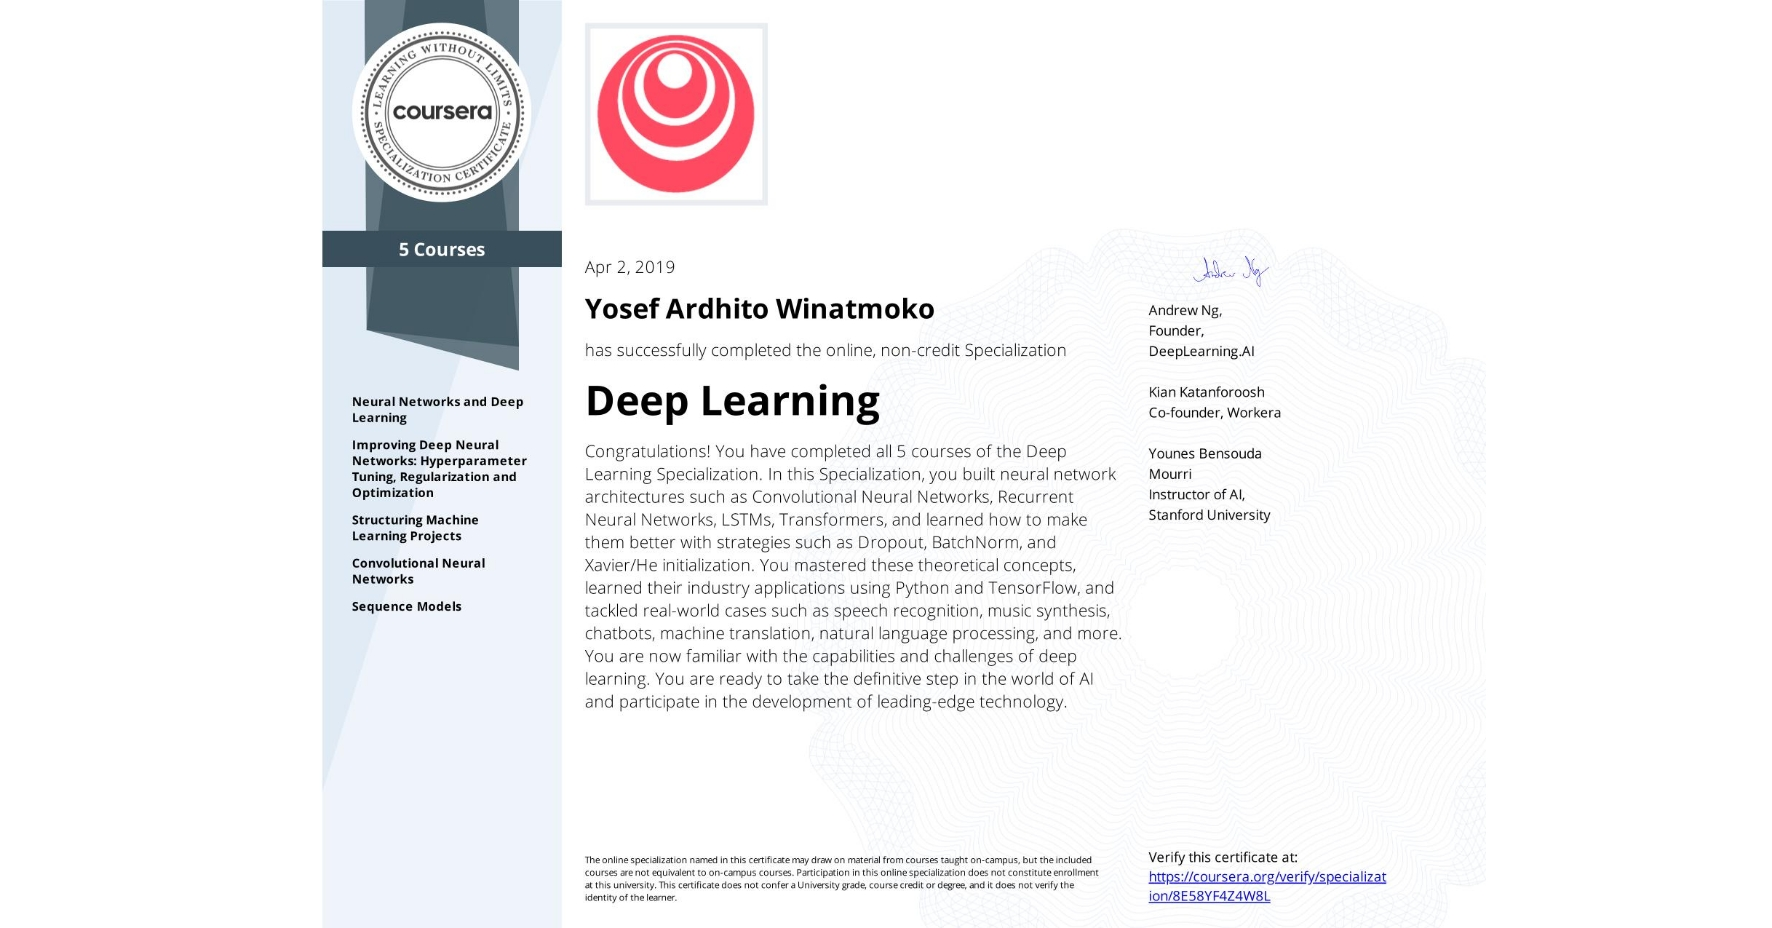 View certificate for Yosef Ardhito  Winatmoko, Deep Learning, offered through Coursera. The Deep Learning Specialization is designed to prepare learners to participate in the development of cutting-edge AI technology, and to understand the capability, the challenges, and the consequences of the rise of deep learning. Through five interconnected courses, learners develop a profound knowledge of the hottest AI algorithms, mastering deep learning from its foundations (neural networks) to its industry applications (Computer Vision, Natural Language Processing, Speech Recognition, etc.).